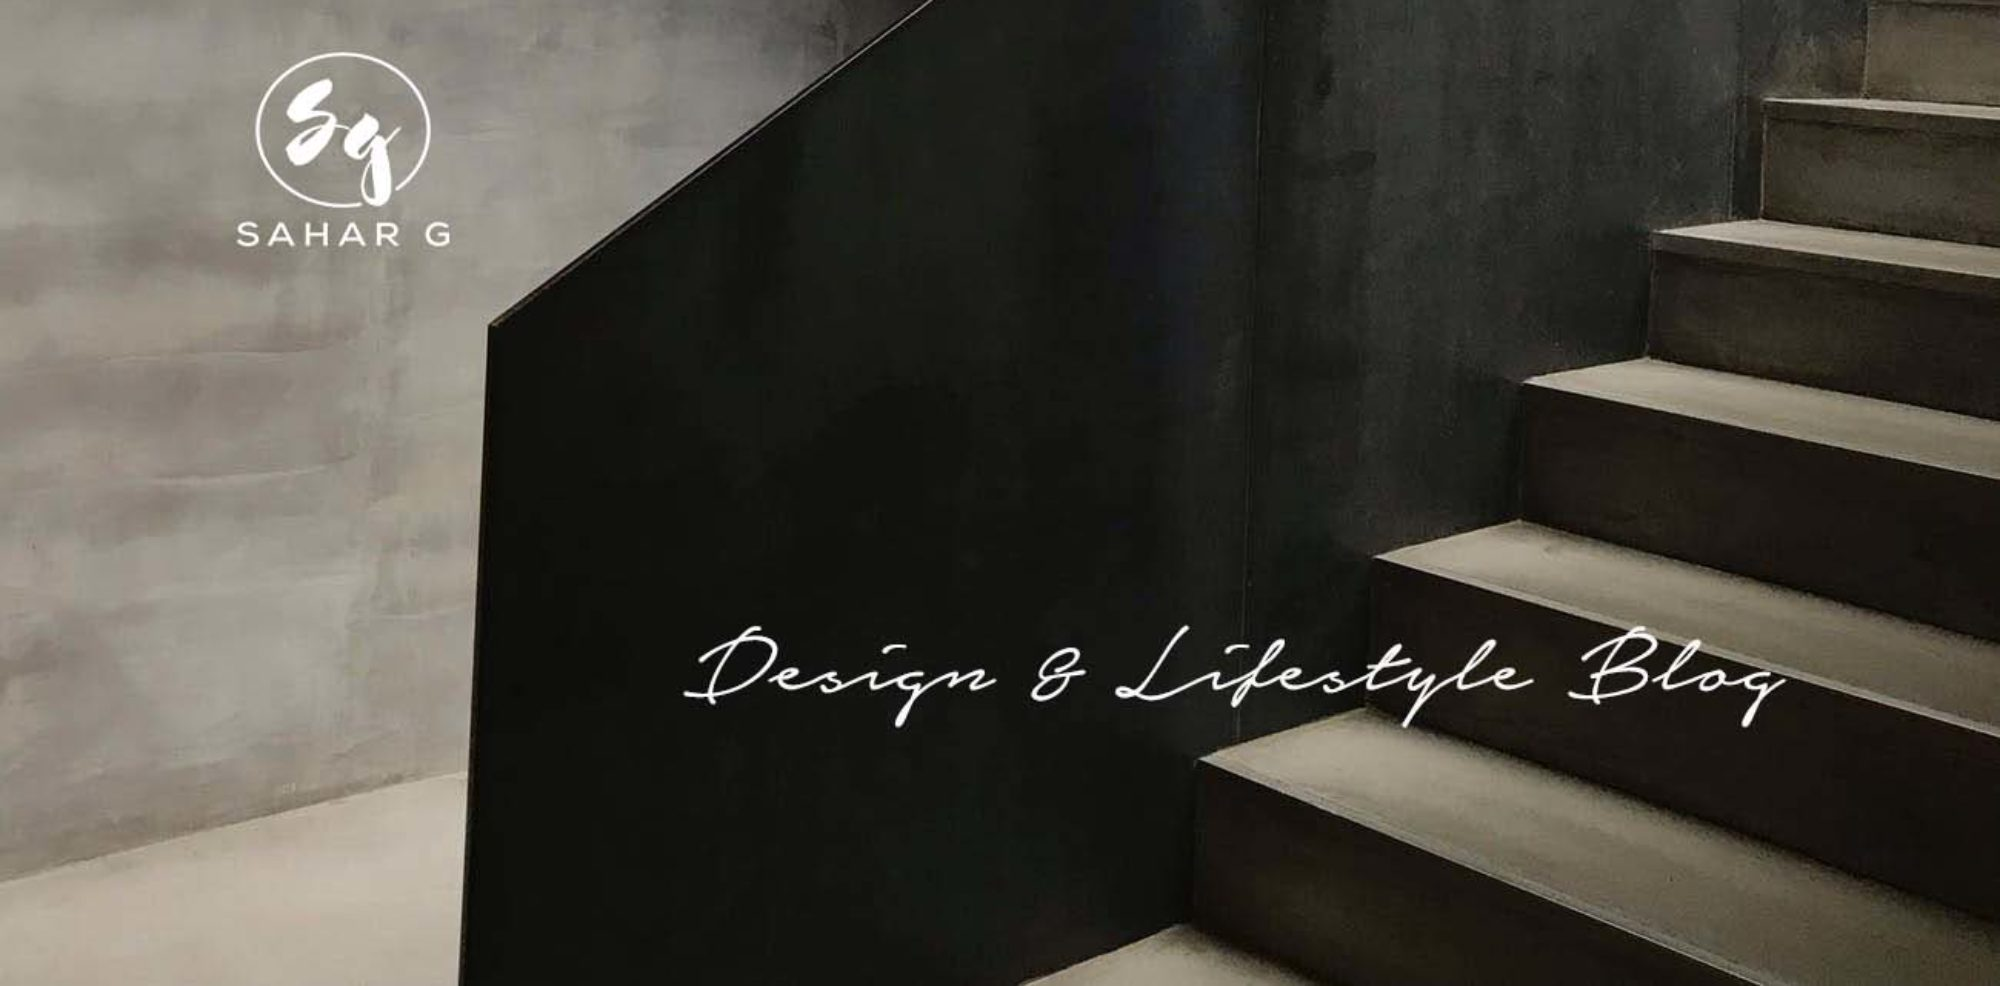 Design & Lifestyle Blog